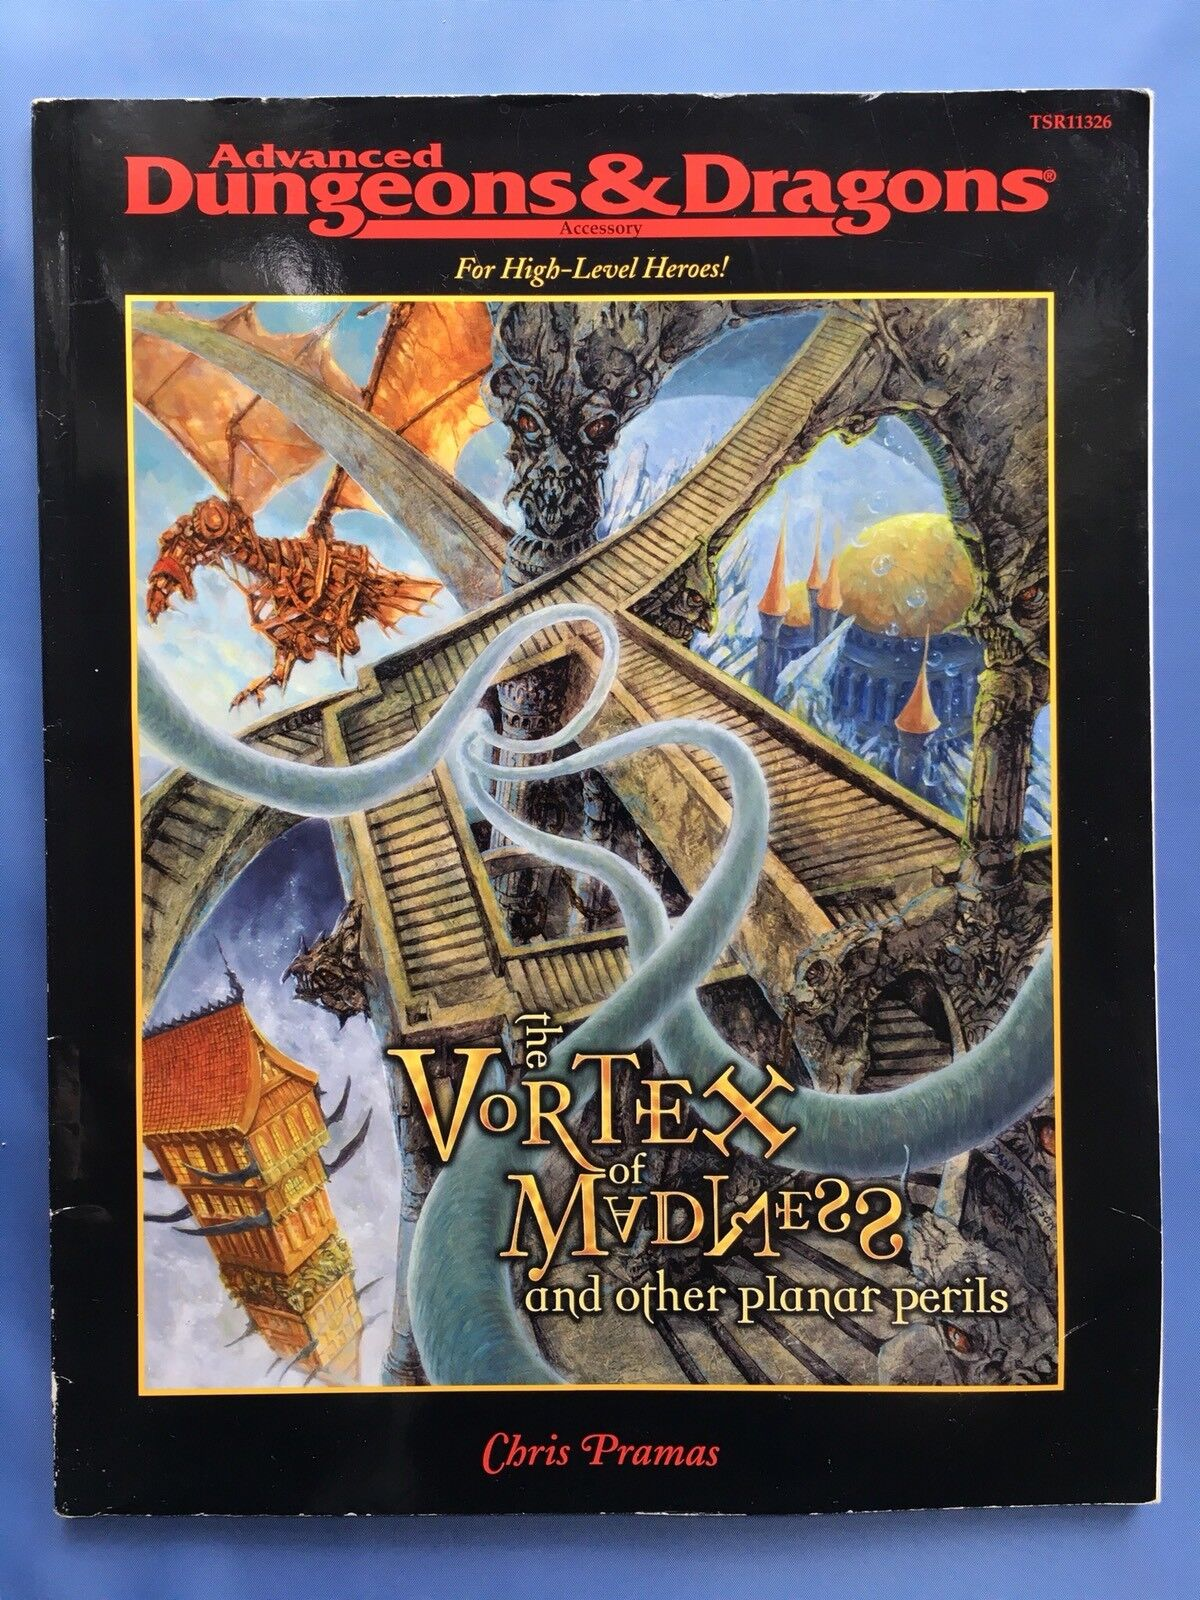 Vortex of Madness and Other Planar Perils - Advanced Dungeons & Dragons TSR11326